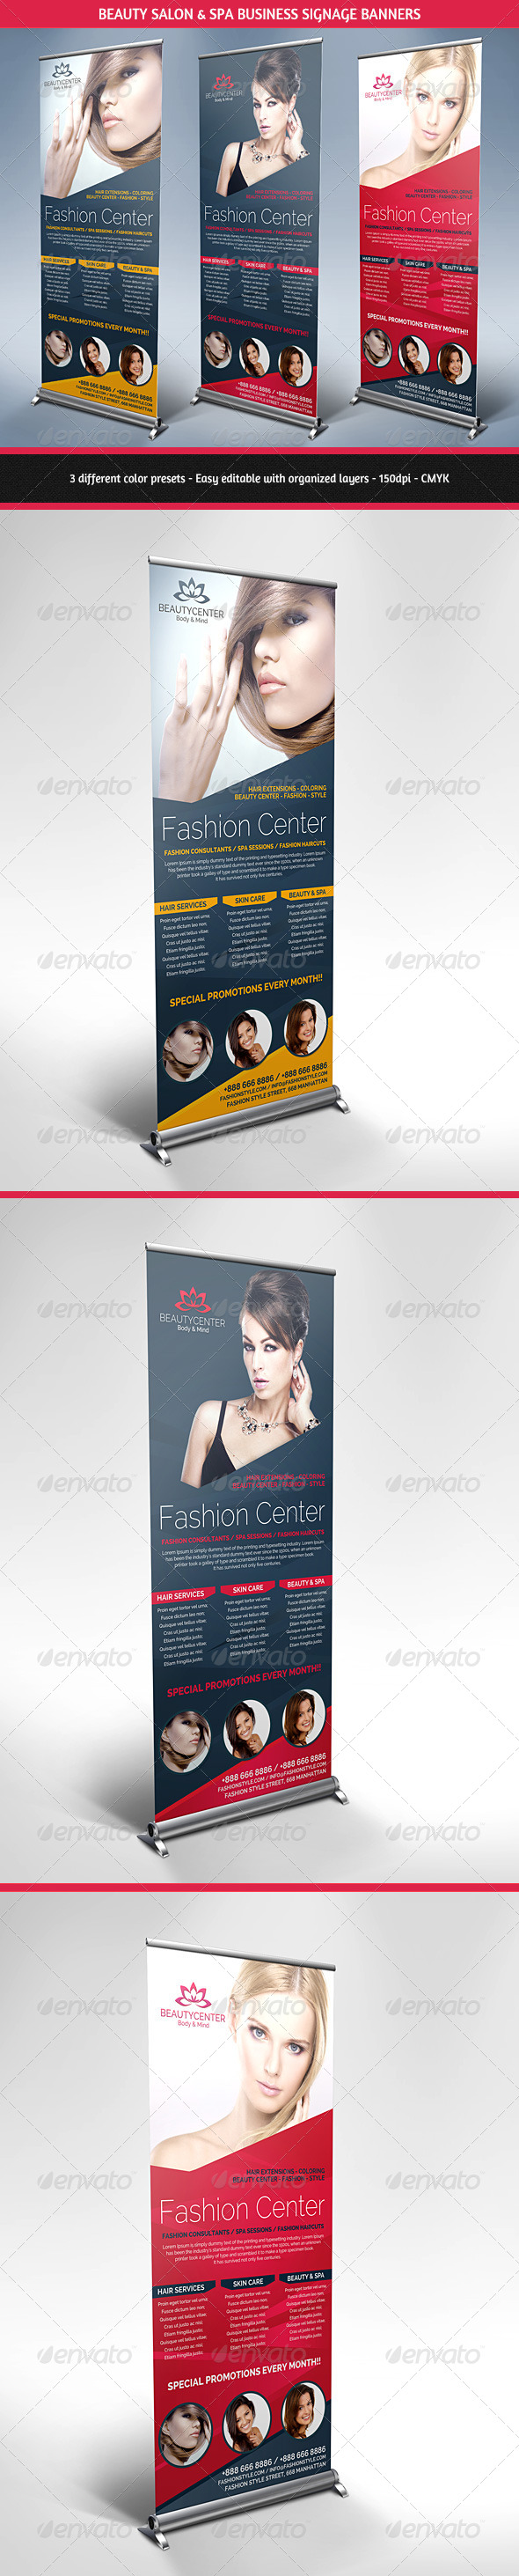 GraphicRiver Beauty Center & Spa Business Roll Up Banners 5600486